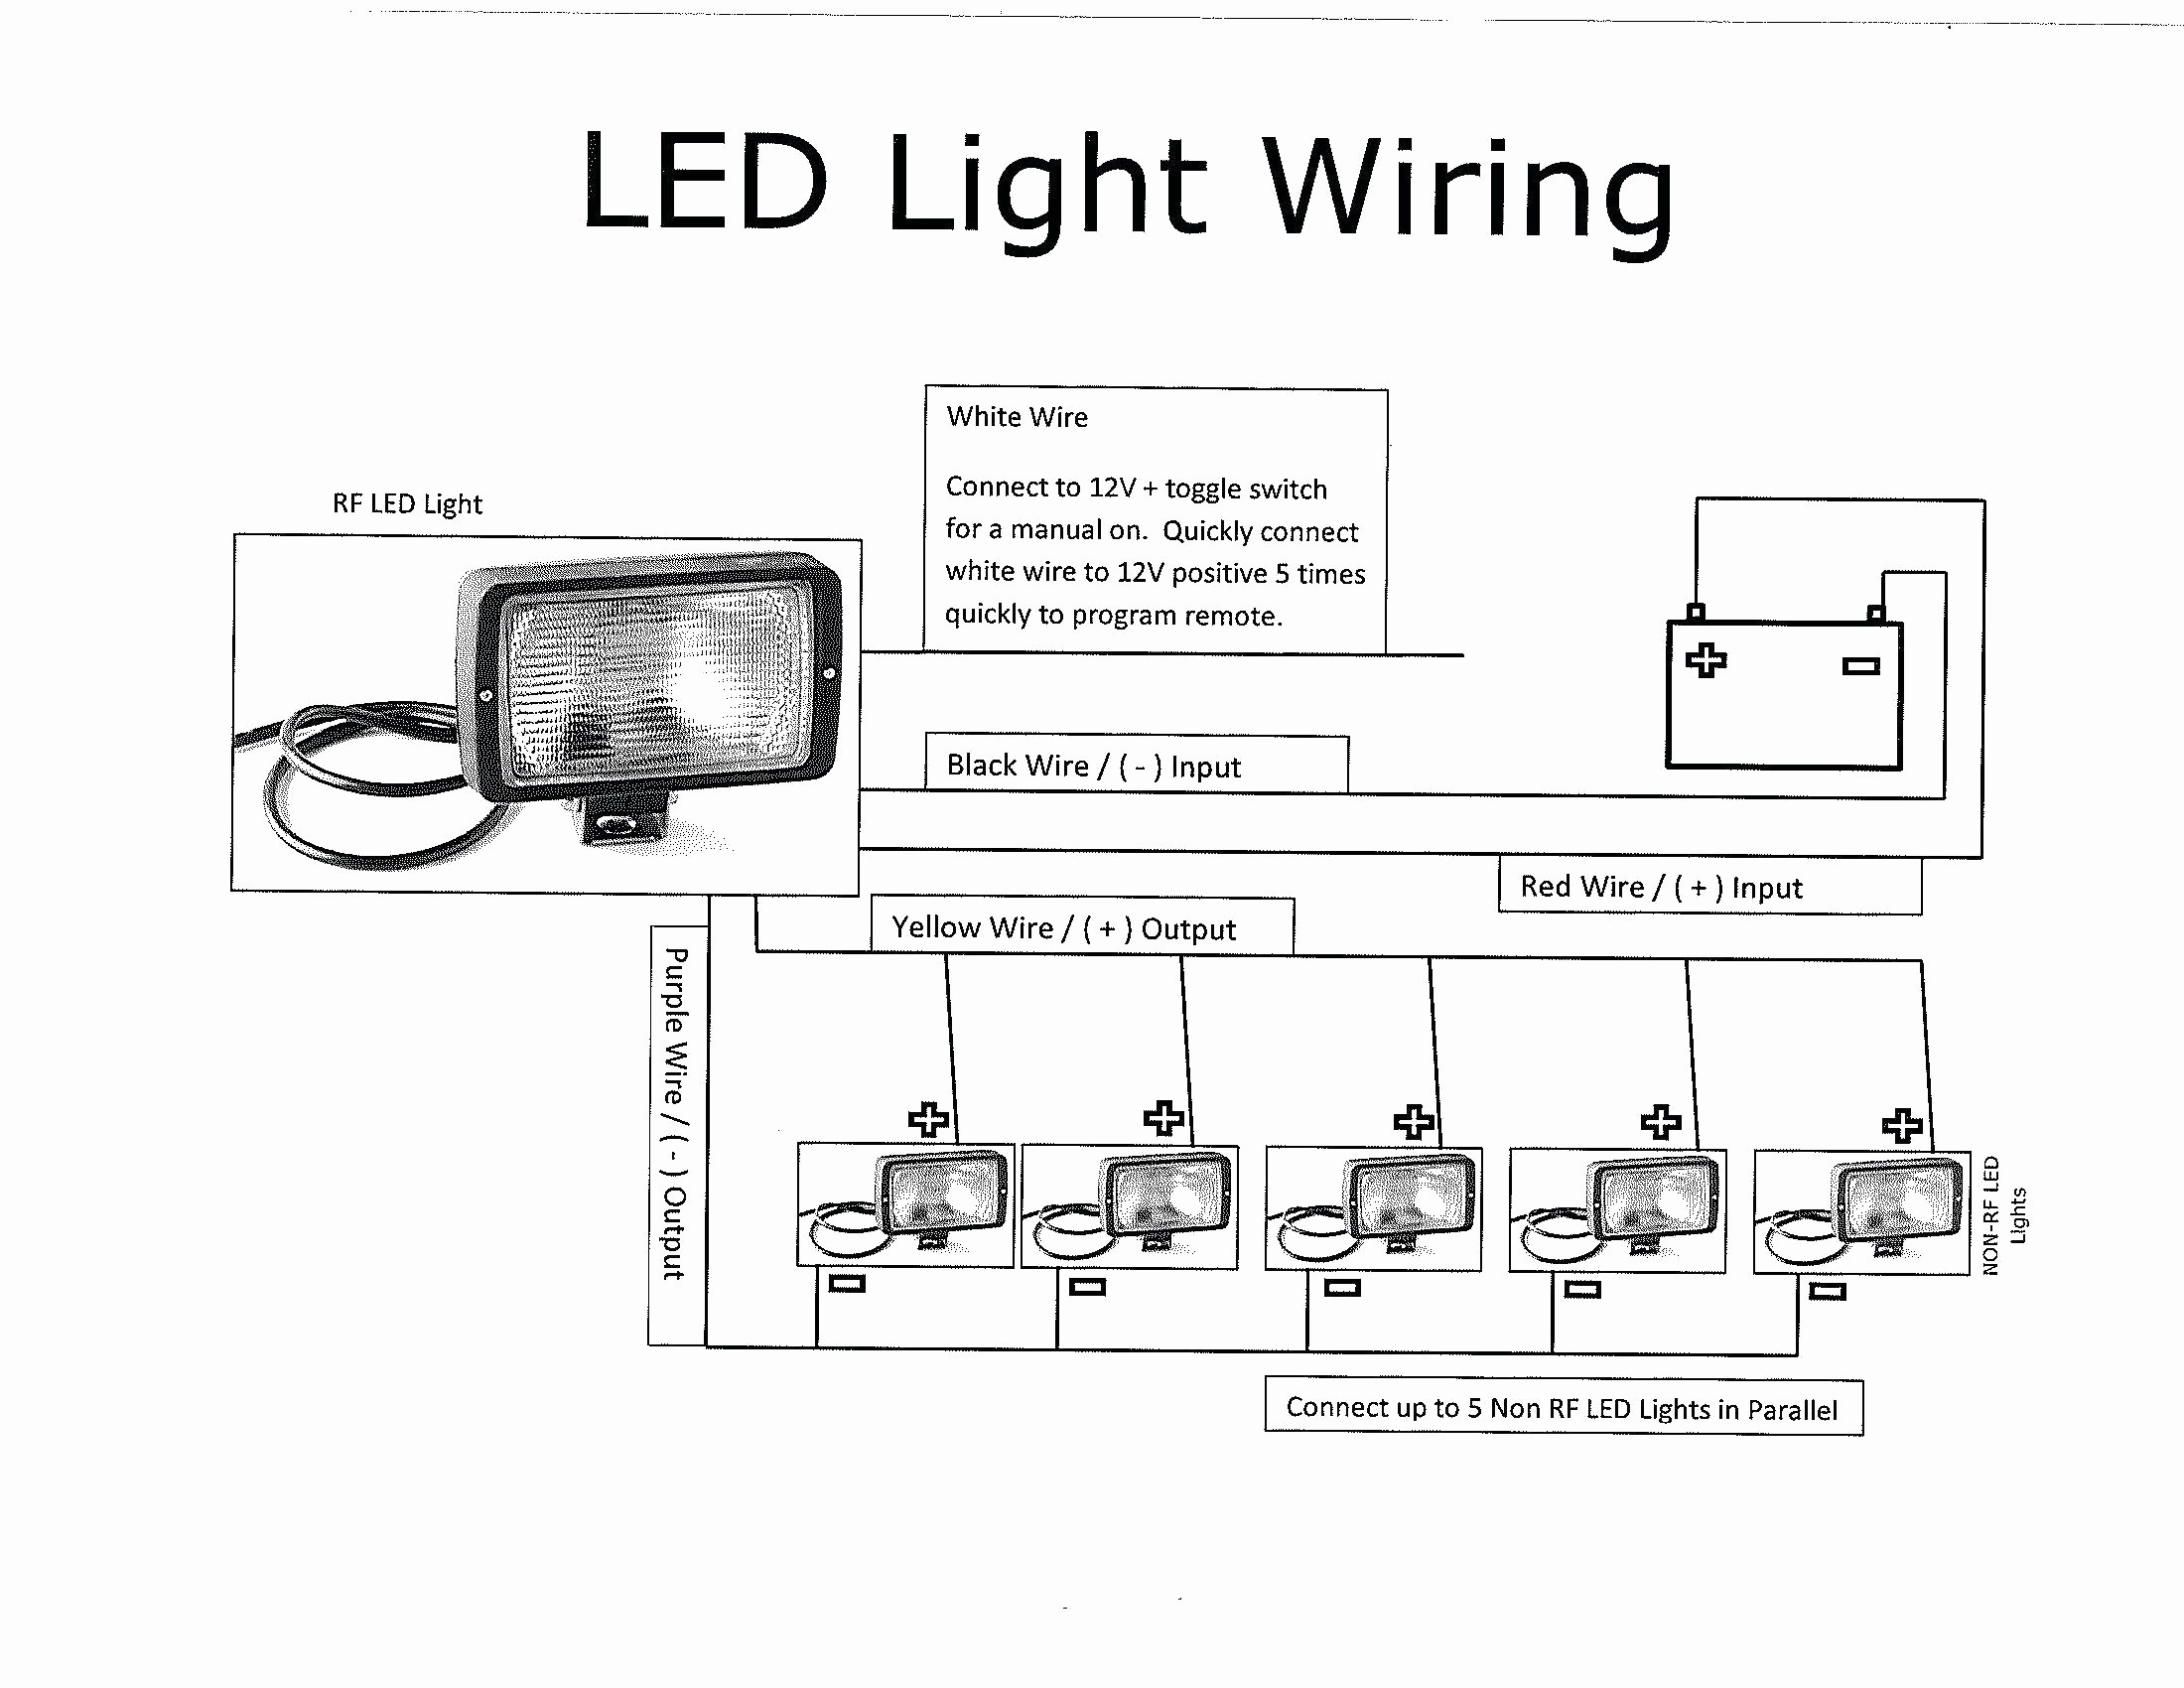 Lamp Wiring Diagram Awesome Dpdt Rocker Switch F Best Ideas Lamp Wiring  Diagram